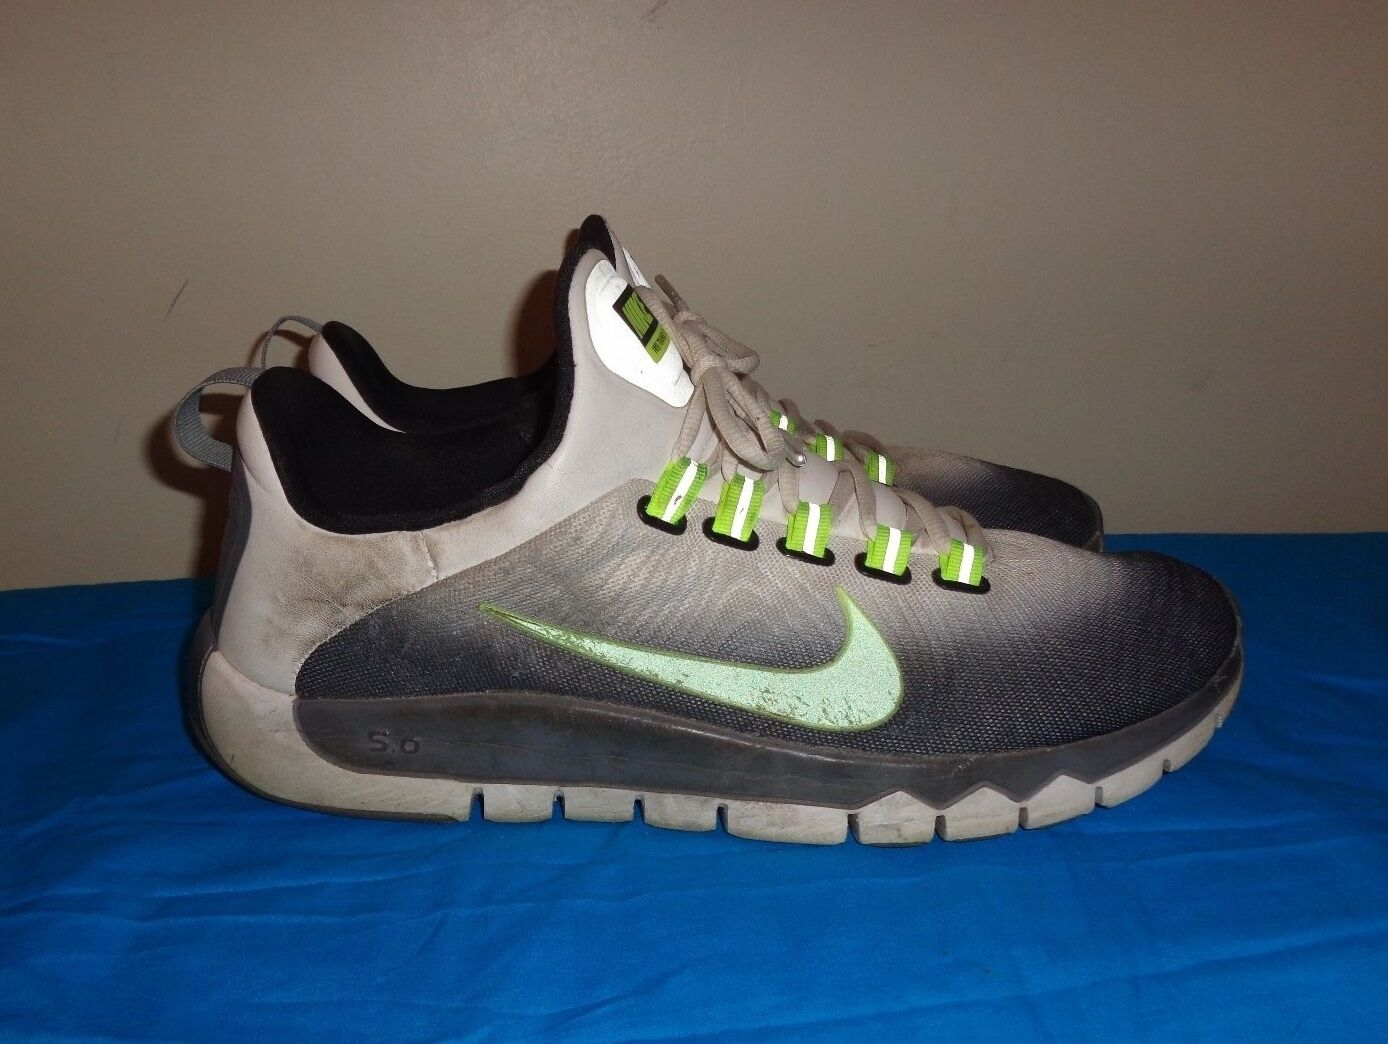 Special limited time mens Nike Trainer 5.0 V5 running shoes size 13 L@@K!